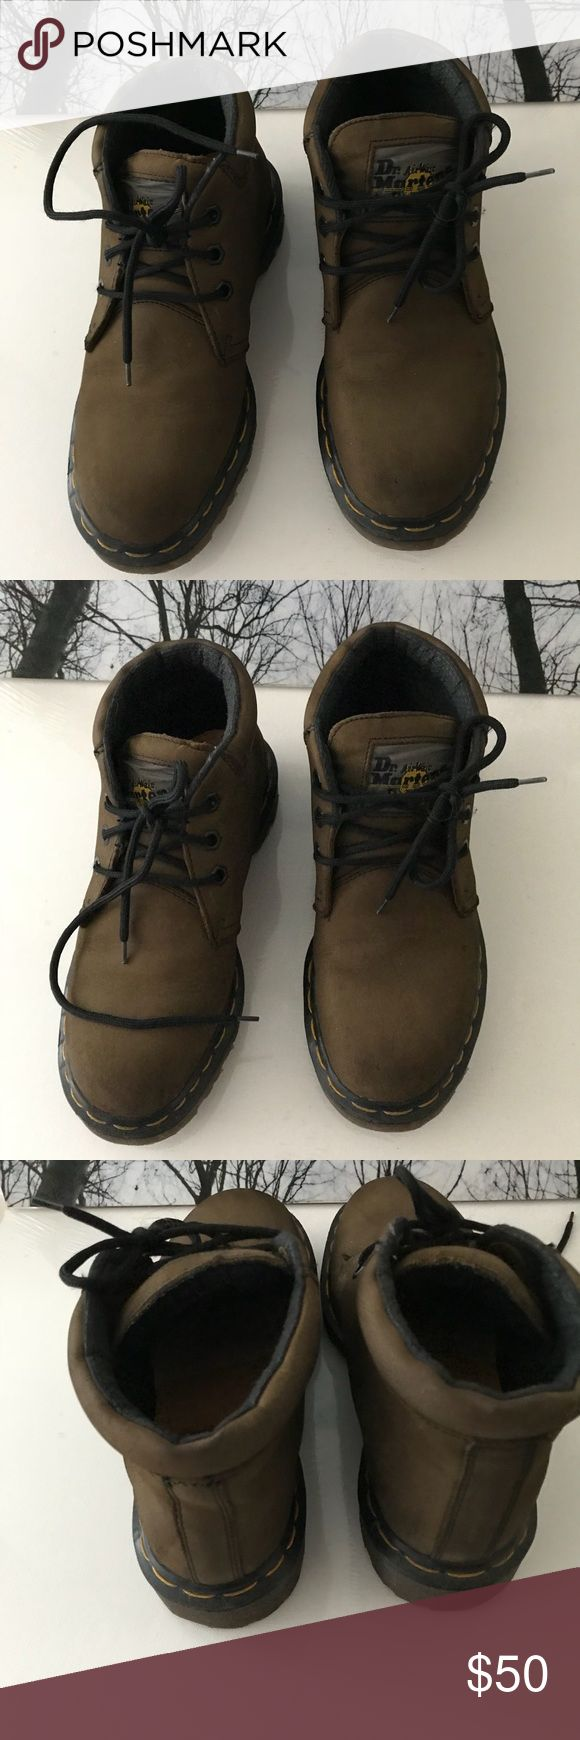 VERY FIRM‼️‼️ Boots St Martens Boots in good condition. St. Martens shoes are durable and lasts so long. These were worn a few times.  Size:4 St. Martens Shoes Boots